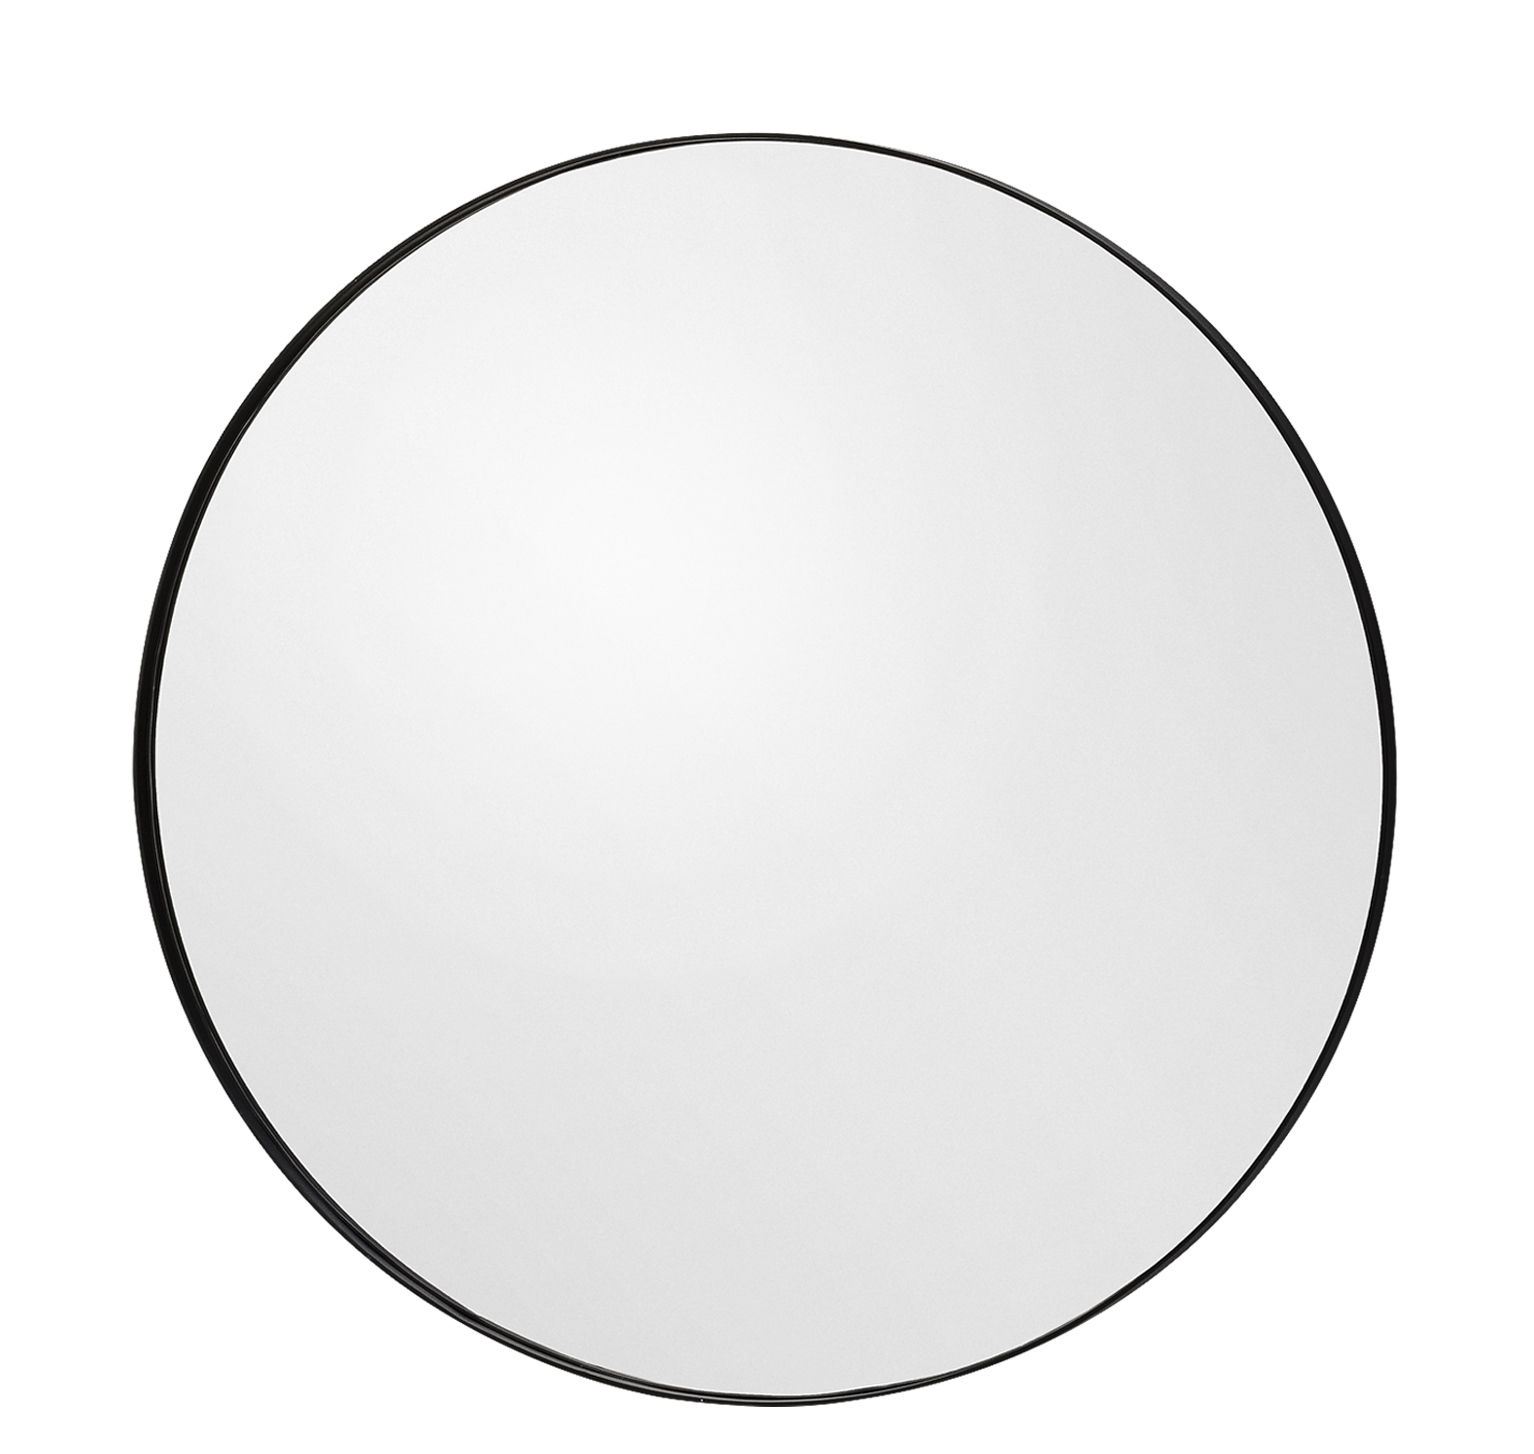 Decoration - Mirrors - Circum Small Wall mirror - Ø 70 cm by AYTM - Smoked grey - Glass, Painted MDF